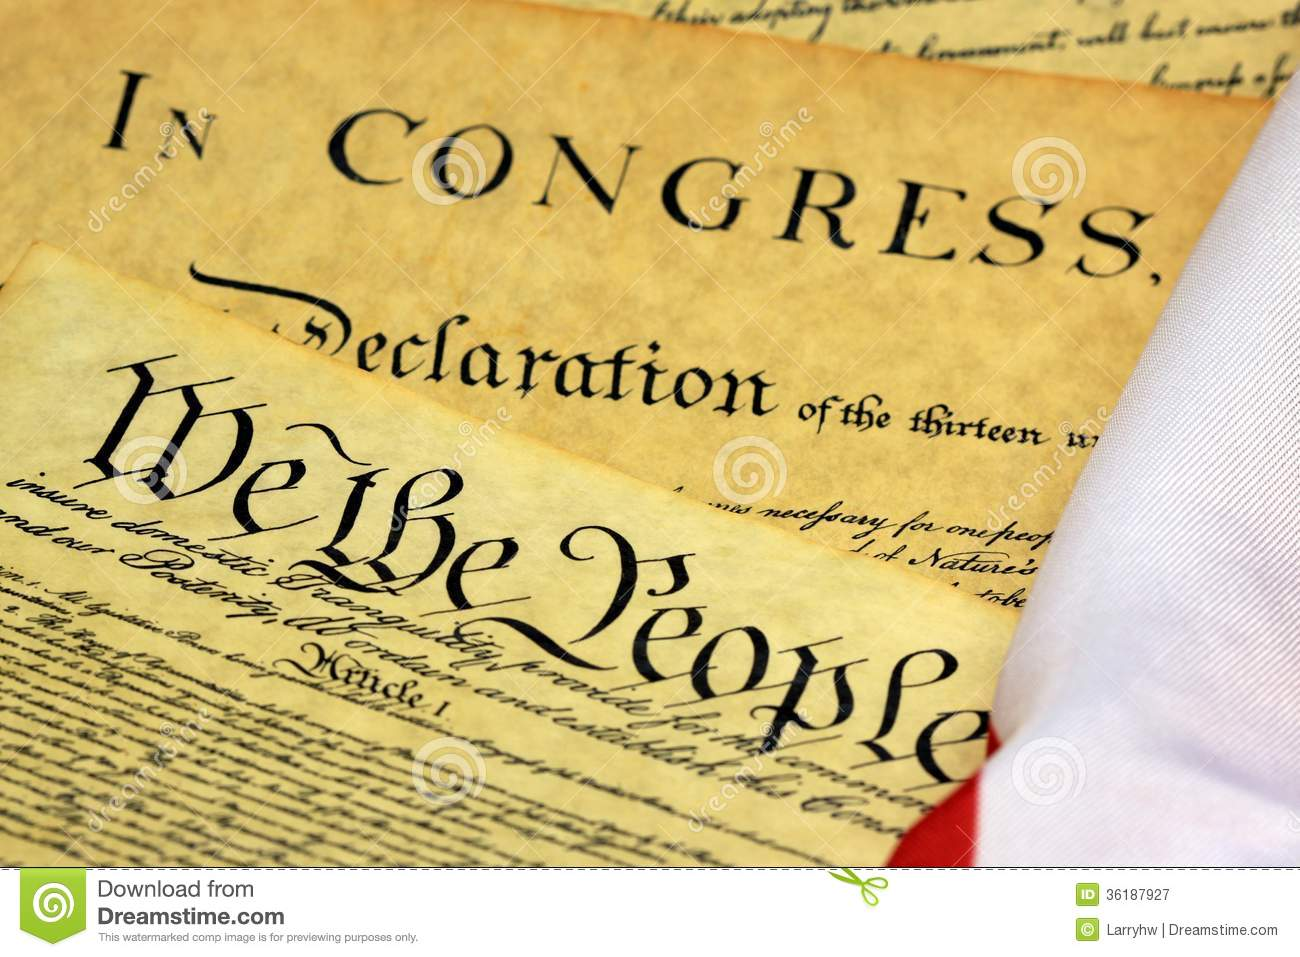 constitution of the people We the people of the united states, in order to form a more perfect union, establish justice, insure domestic tranquility, provide for the common defence, promote the general welfare, and secure the blessings of liberty to ourselves and our posterity, do ordain and establish this constitution for the united states of america.